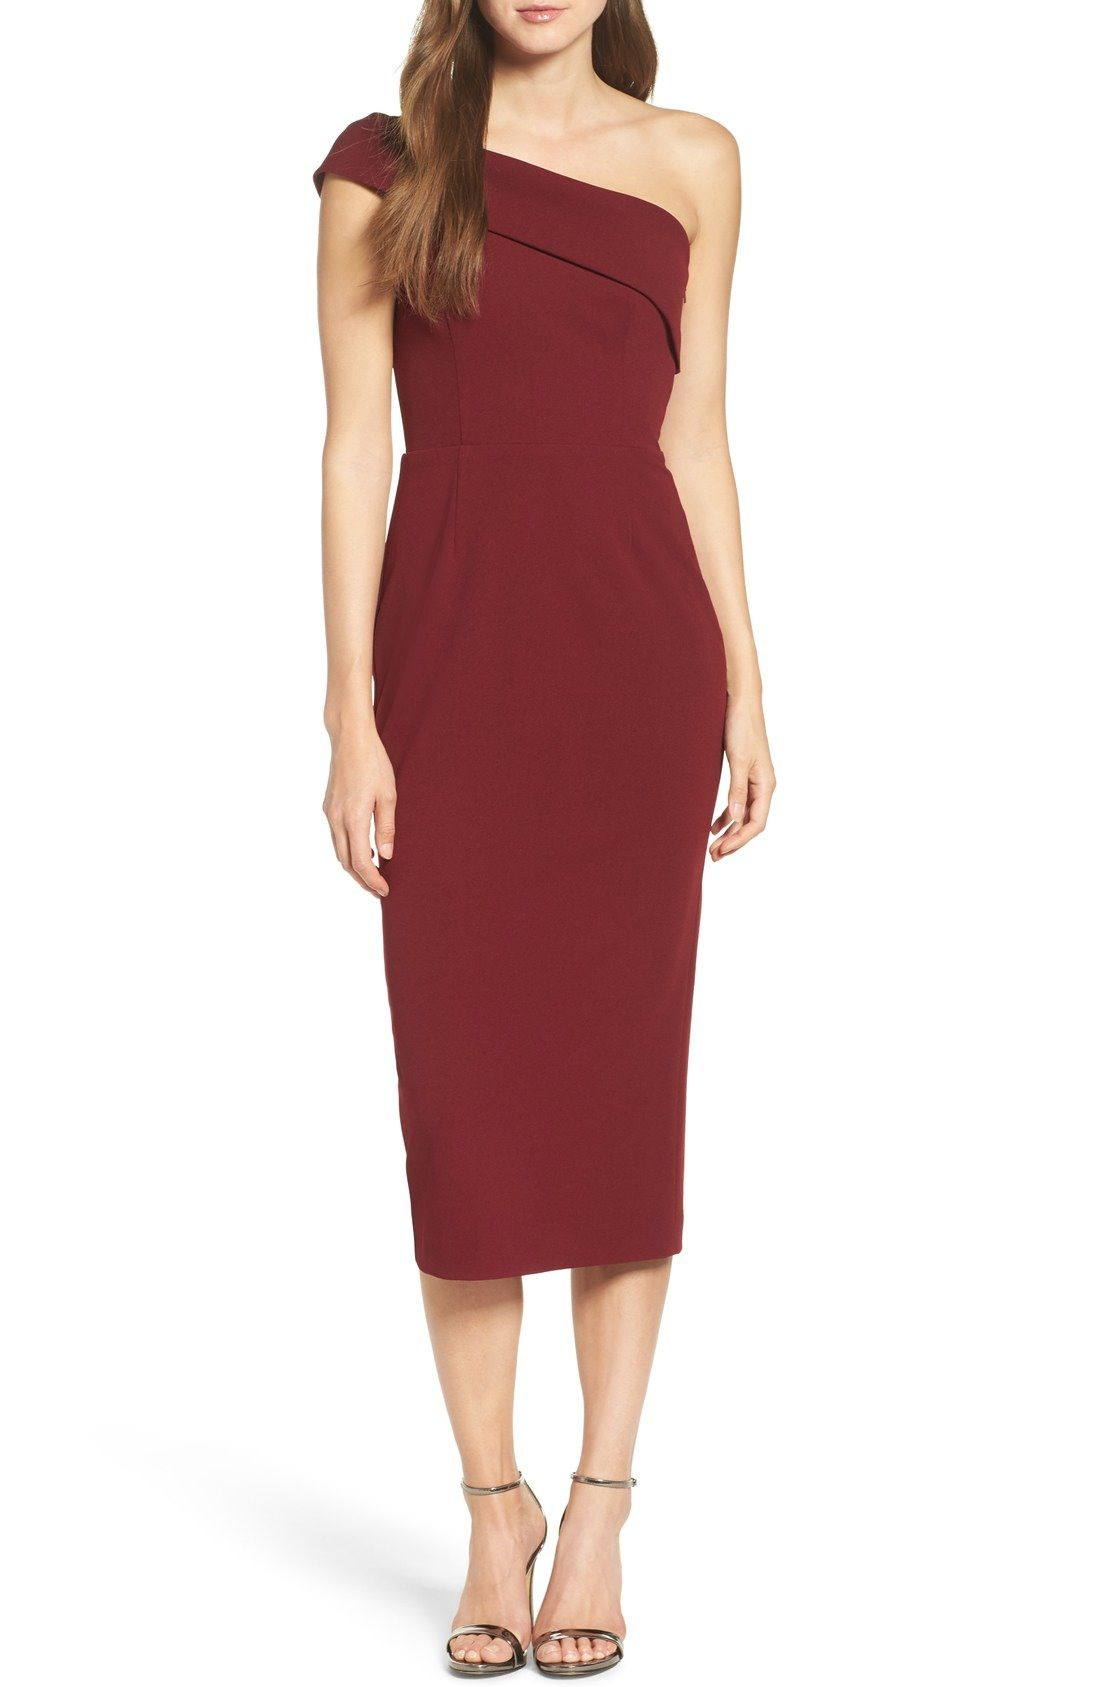 Nordstrom dresses wedding guest  Katie May OneShoulder Midi Sheath Dress available at Nordstrom